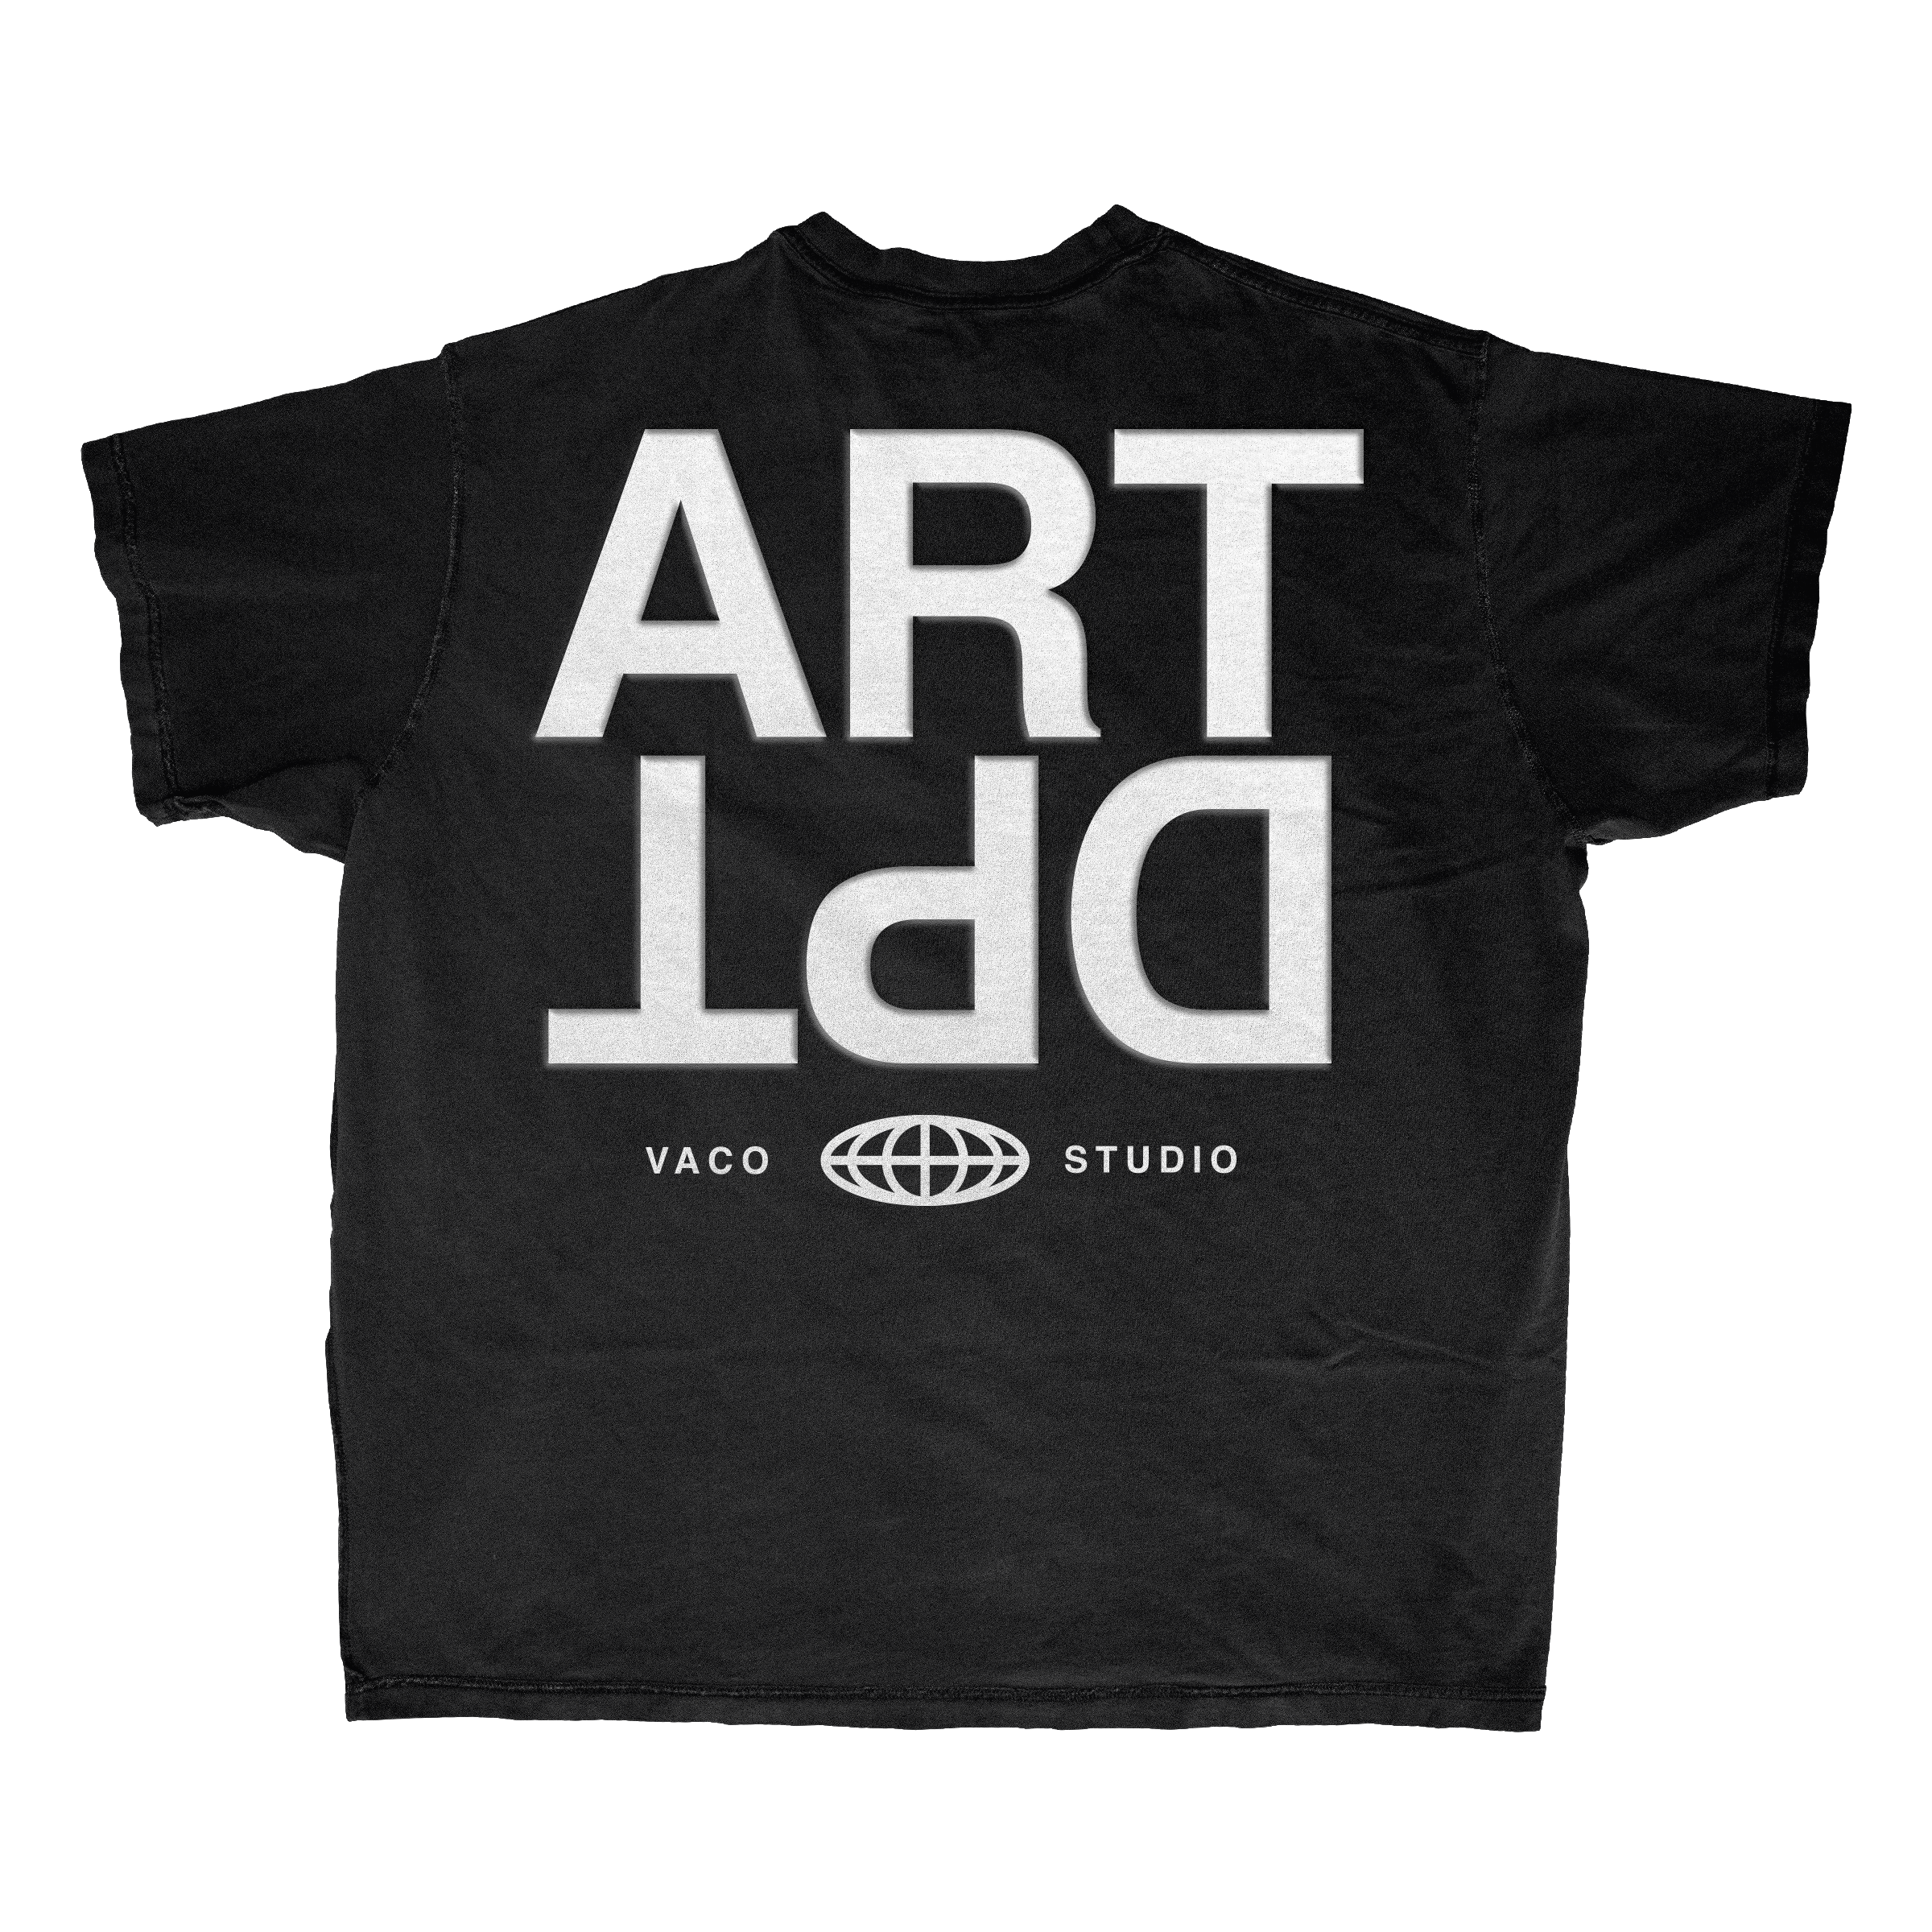 Secondary Image for ART DPT Tee